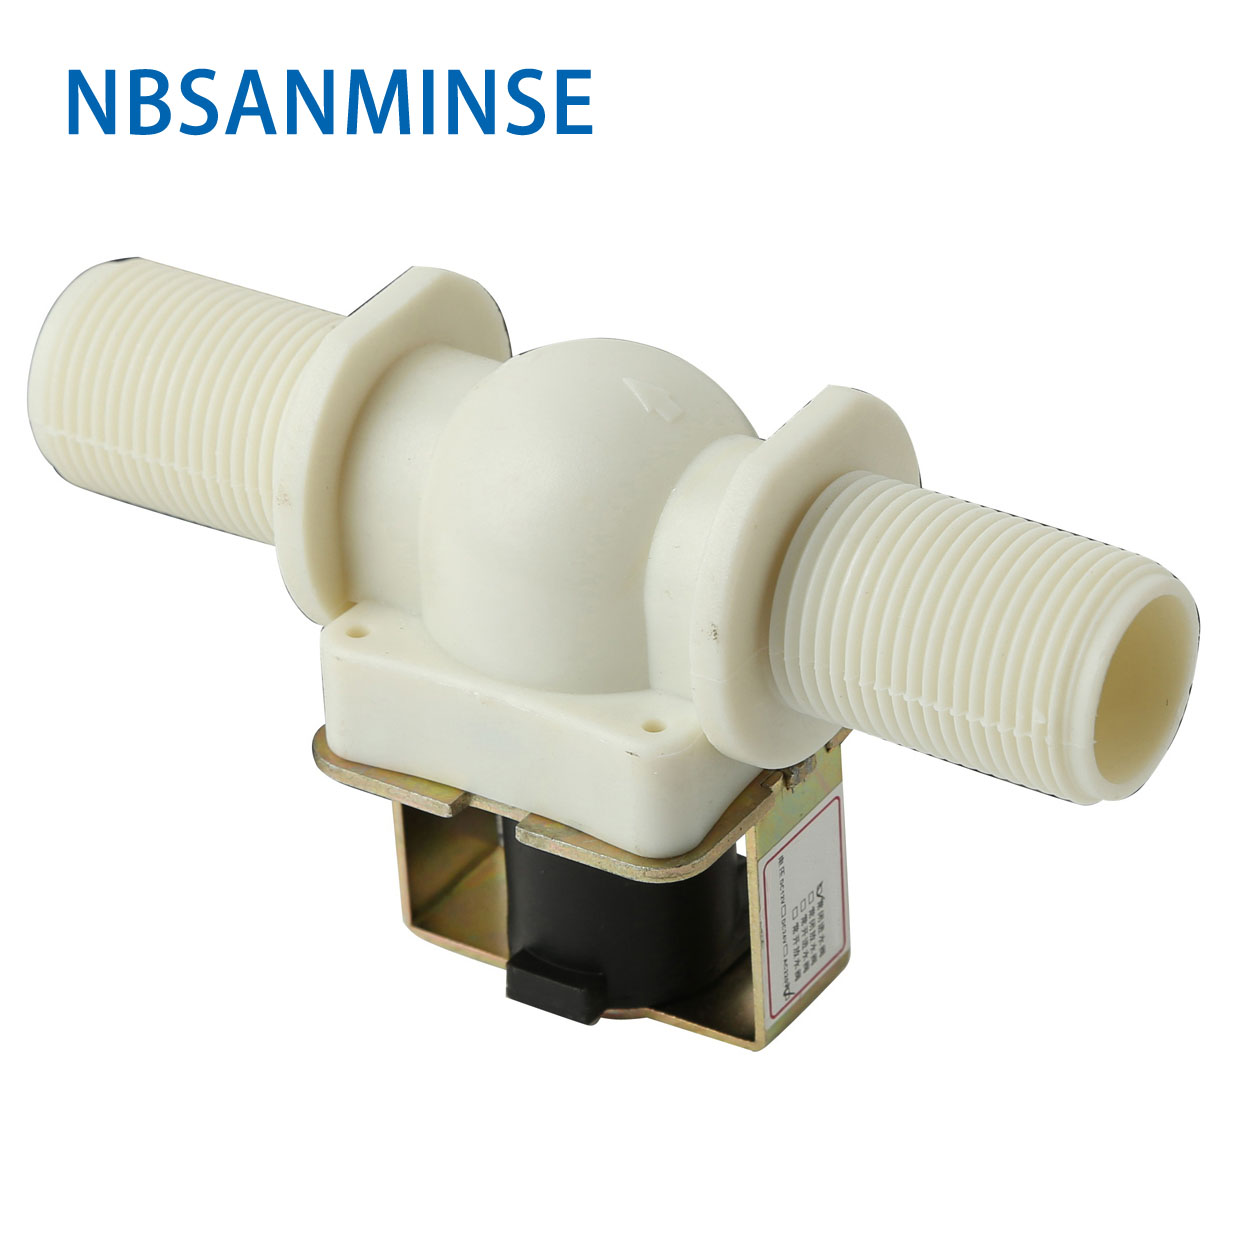 Nbsanminse Smpdj 08 Water Solenoid Vavle G3/4 Inch 5w 420ma High Quality Mainly Used For Washing Machines Dishwashers